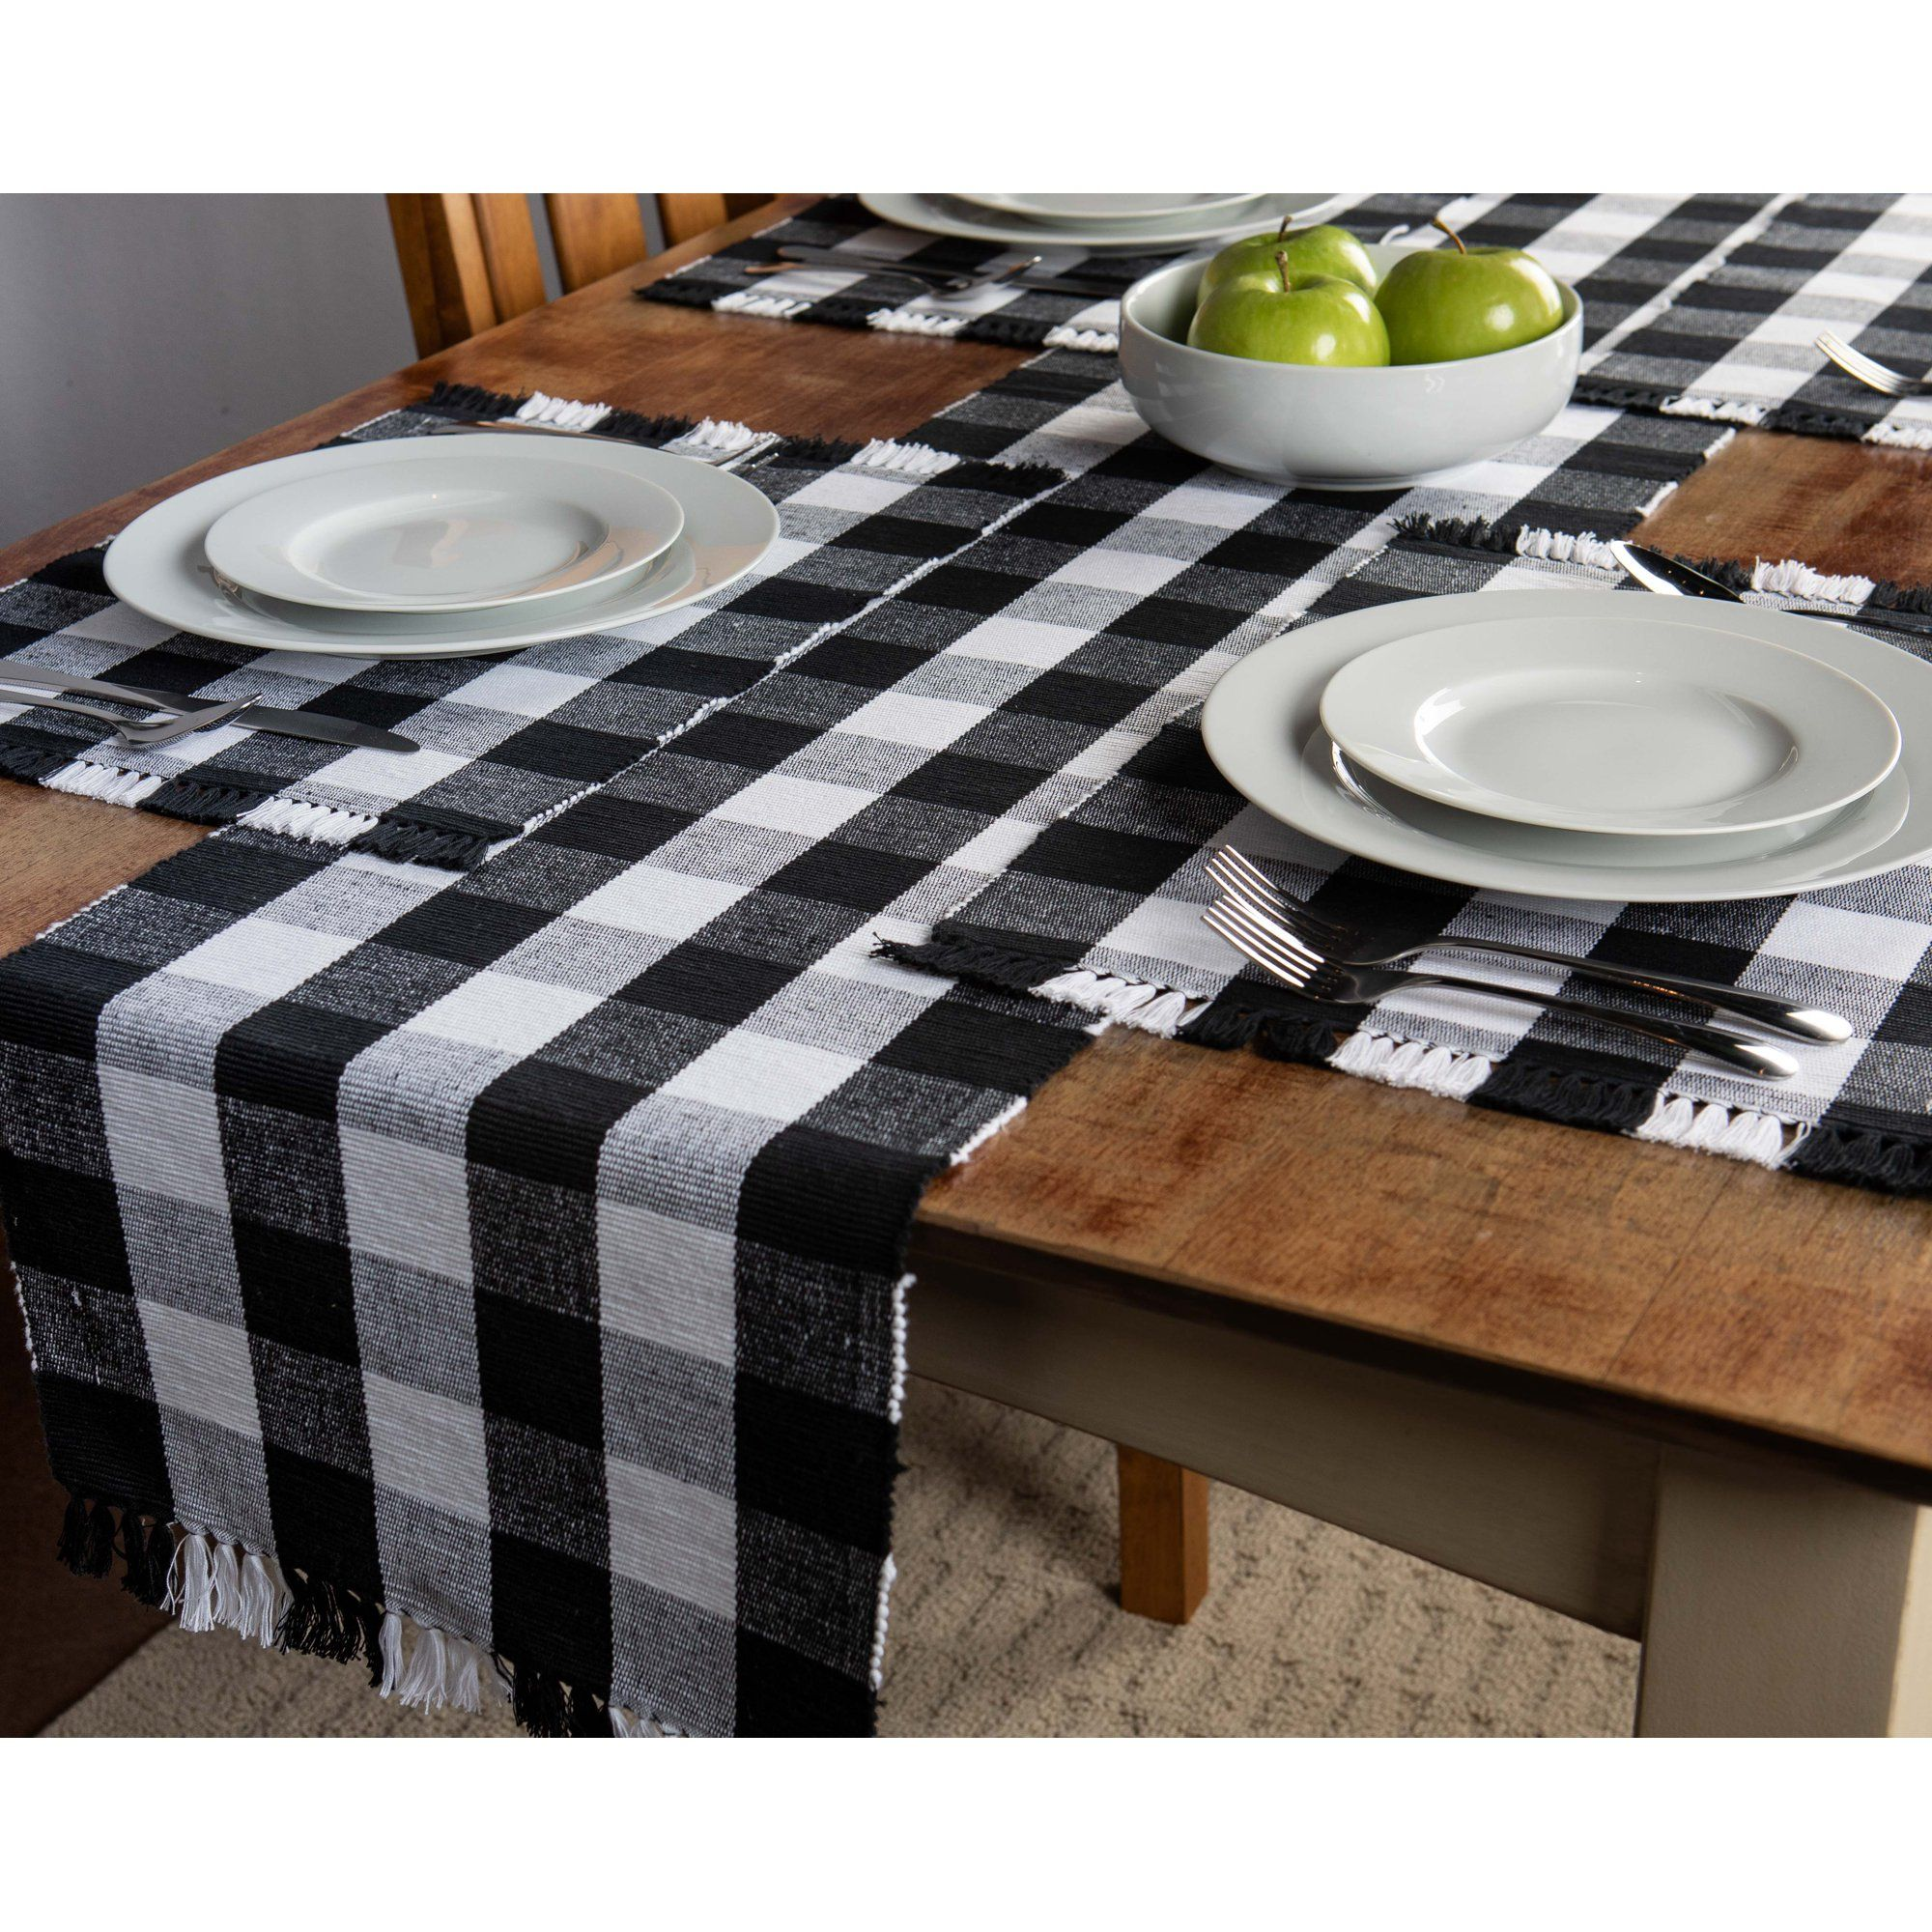 Mainstays 4 Pack Buffalo Plaid Placemat Black And White Walmart Com In 2021 Buffalo Plaid Decor White Placemats Buffalo Plaid Table Runner